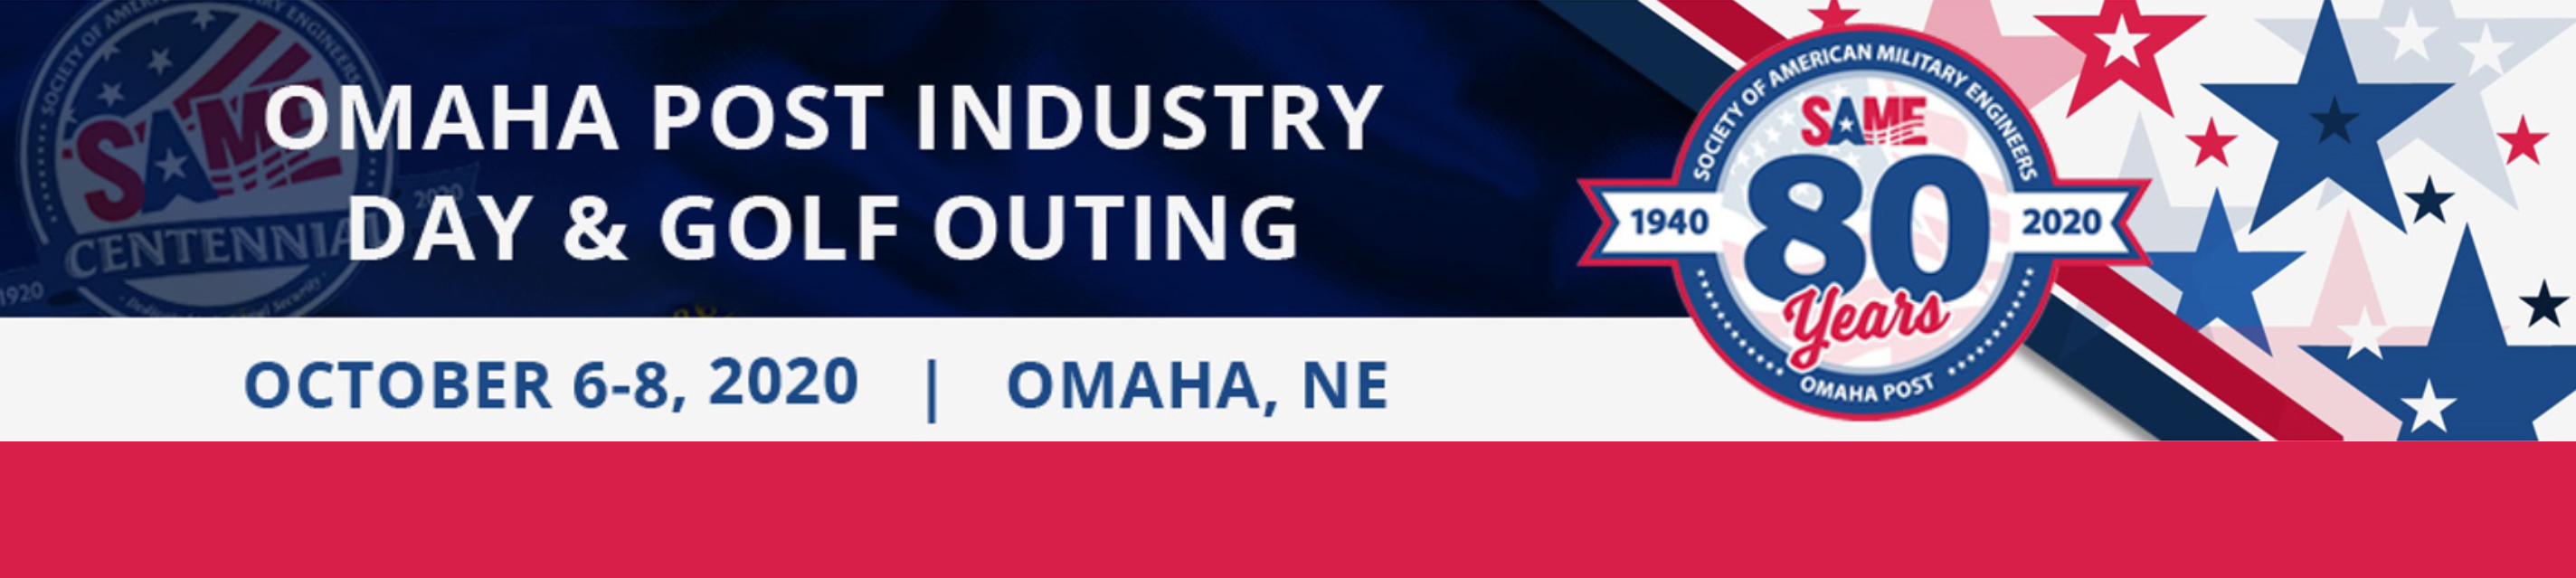 2020 SAME Omaha Post Industry Day Banner